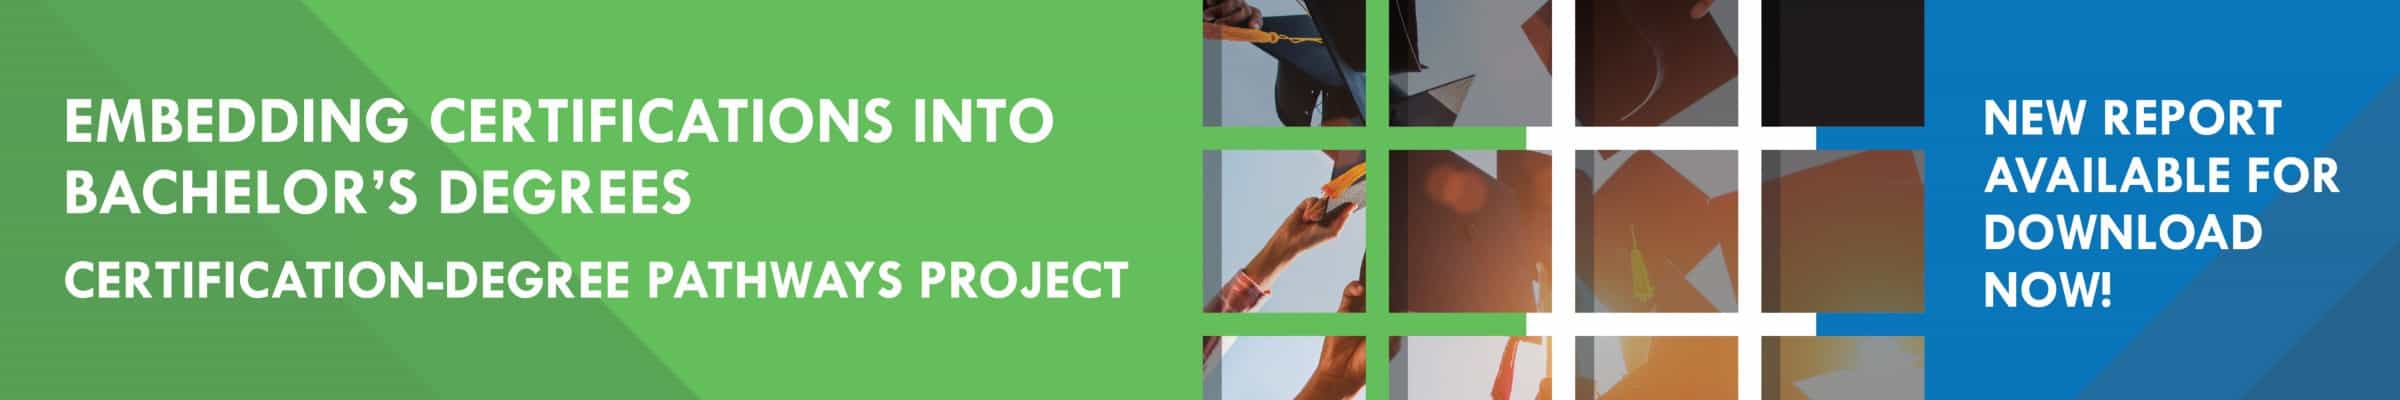 Green image for embedding certifications into bachelor's degrees, the certification-free pathway project from Workcred.